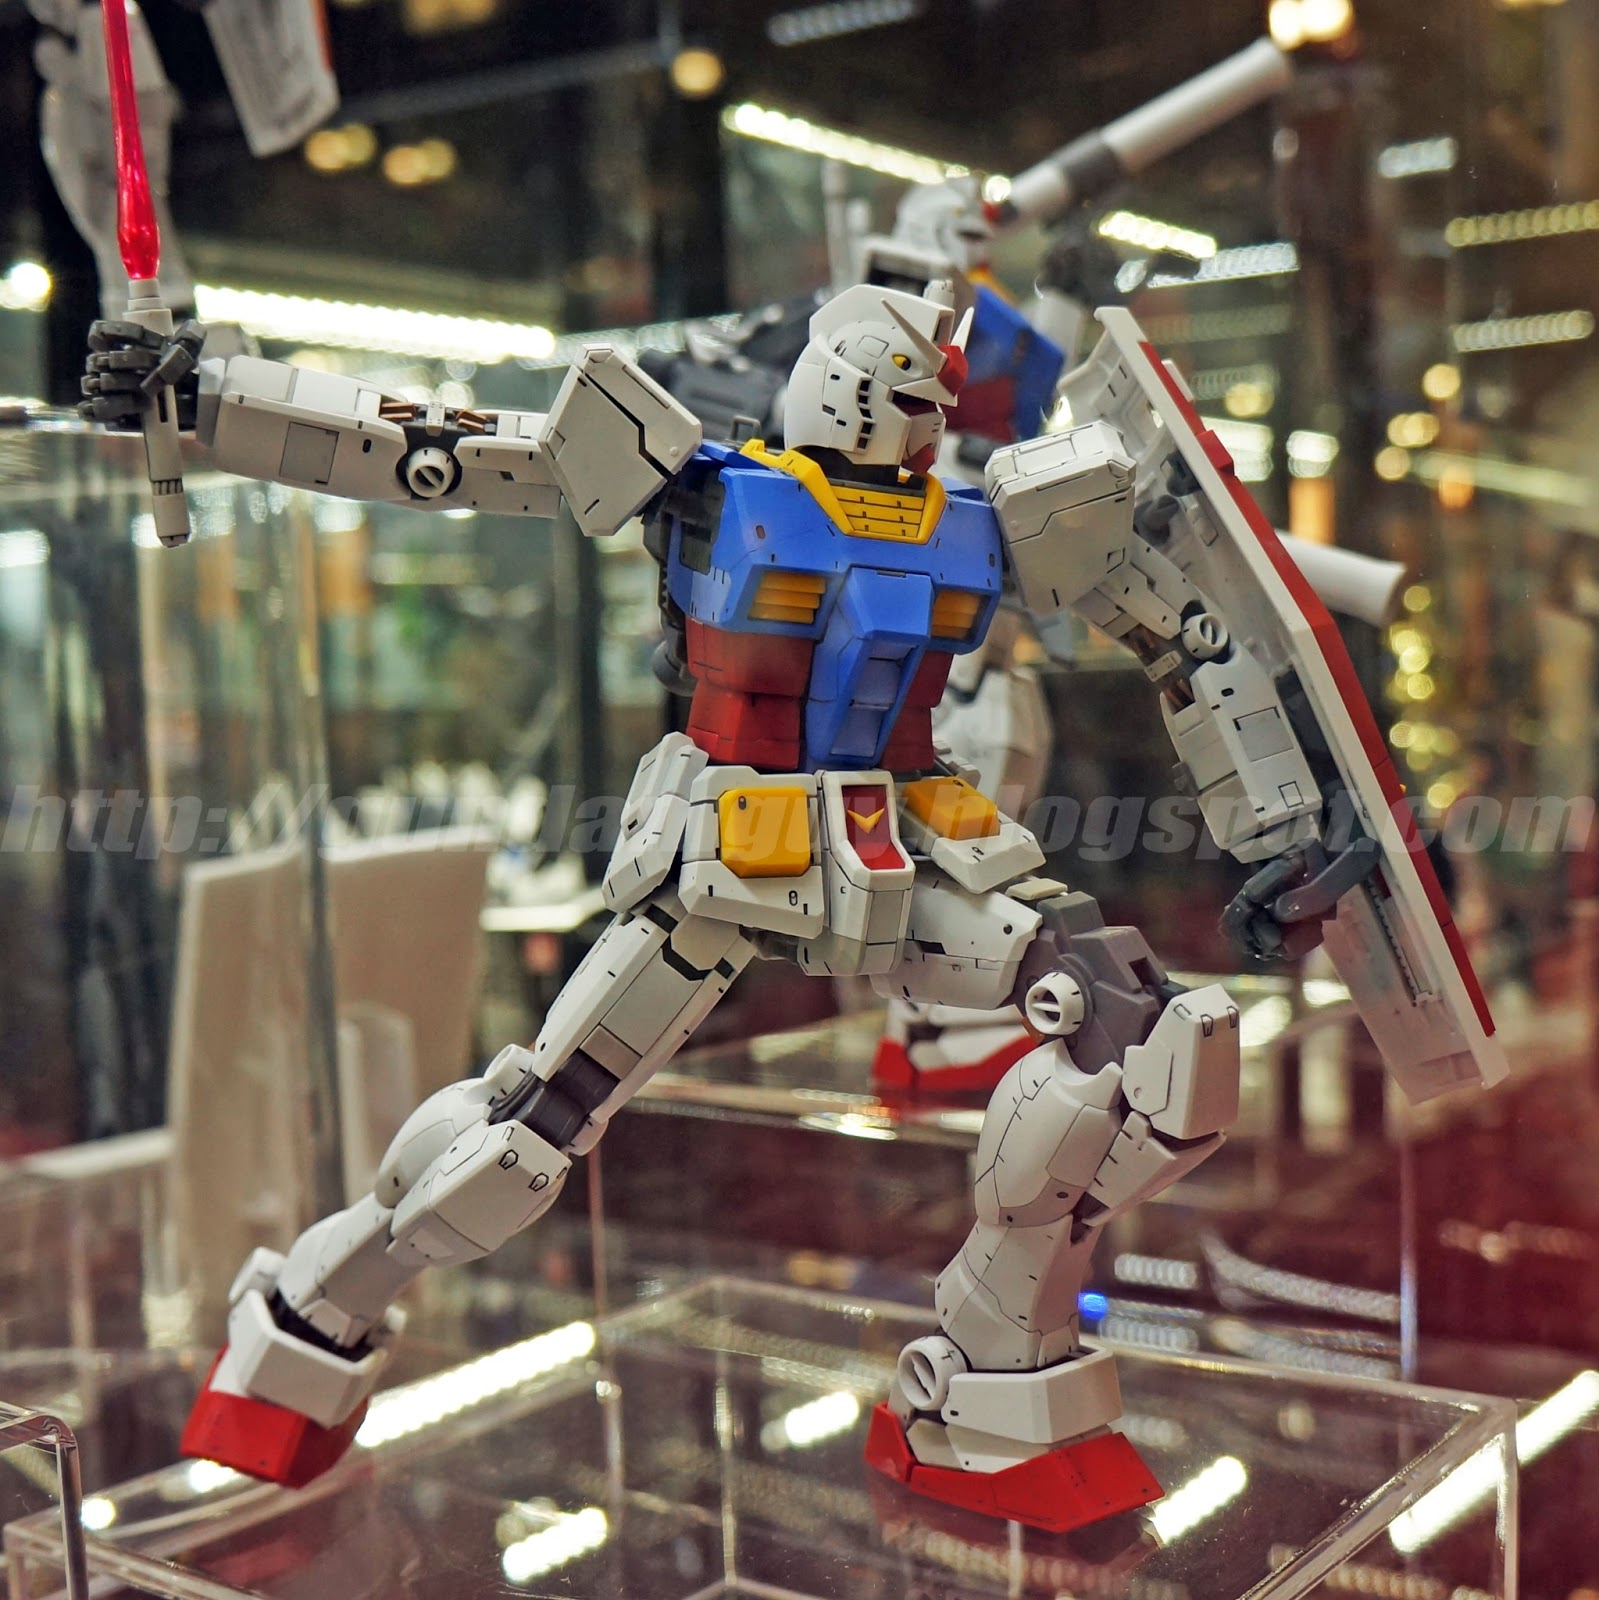 MG 1/100 RX-78-2 Gundam Ver. 3.0 - On Display Images @ AX 2013 [Updated 7/9/13]